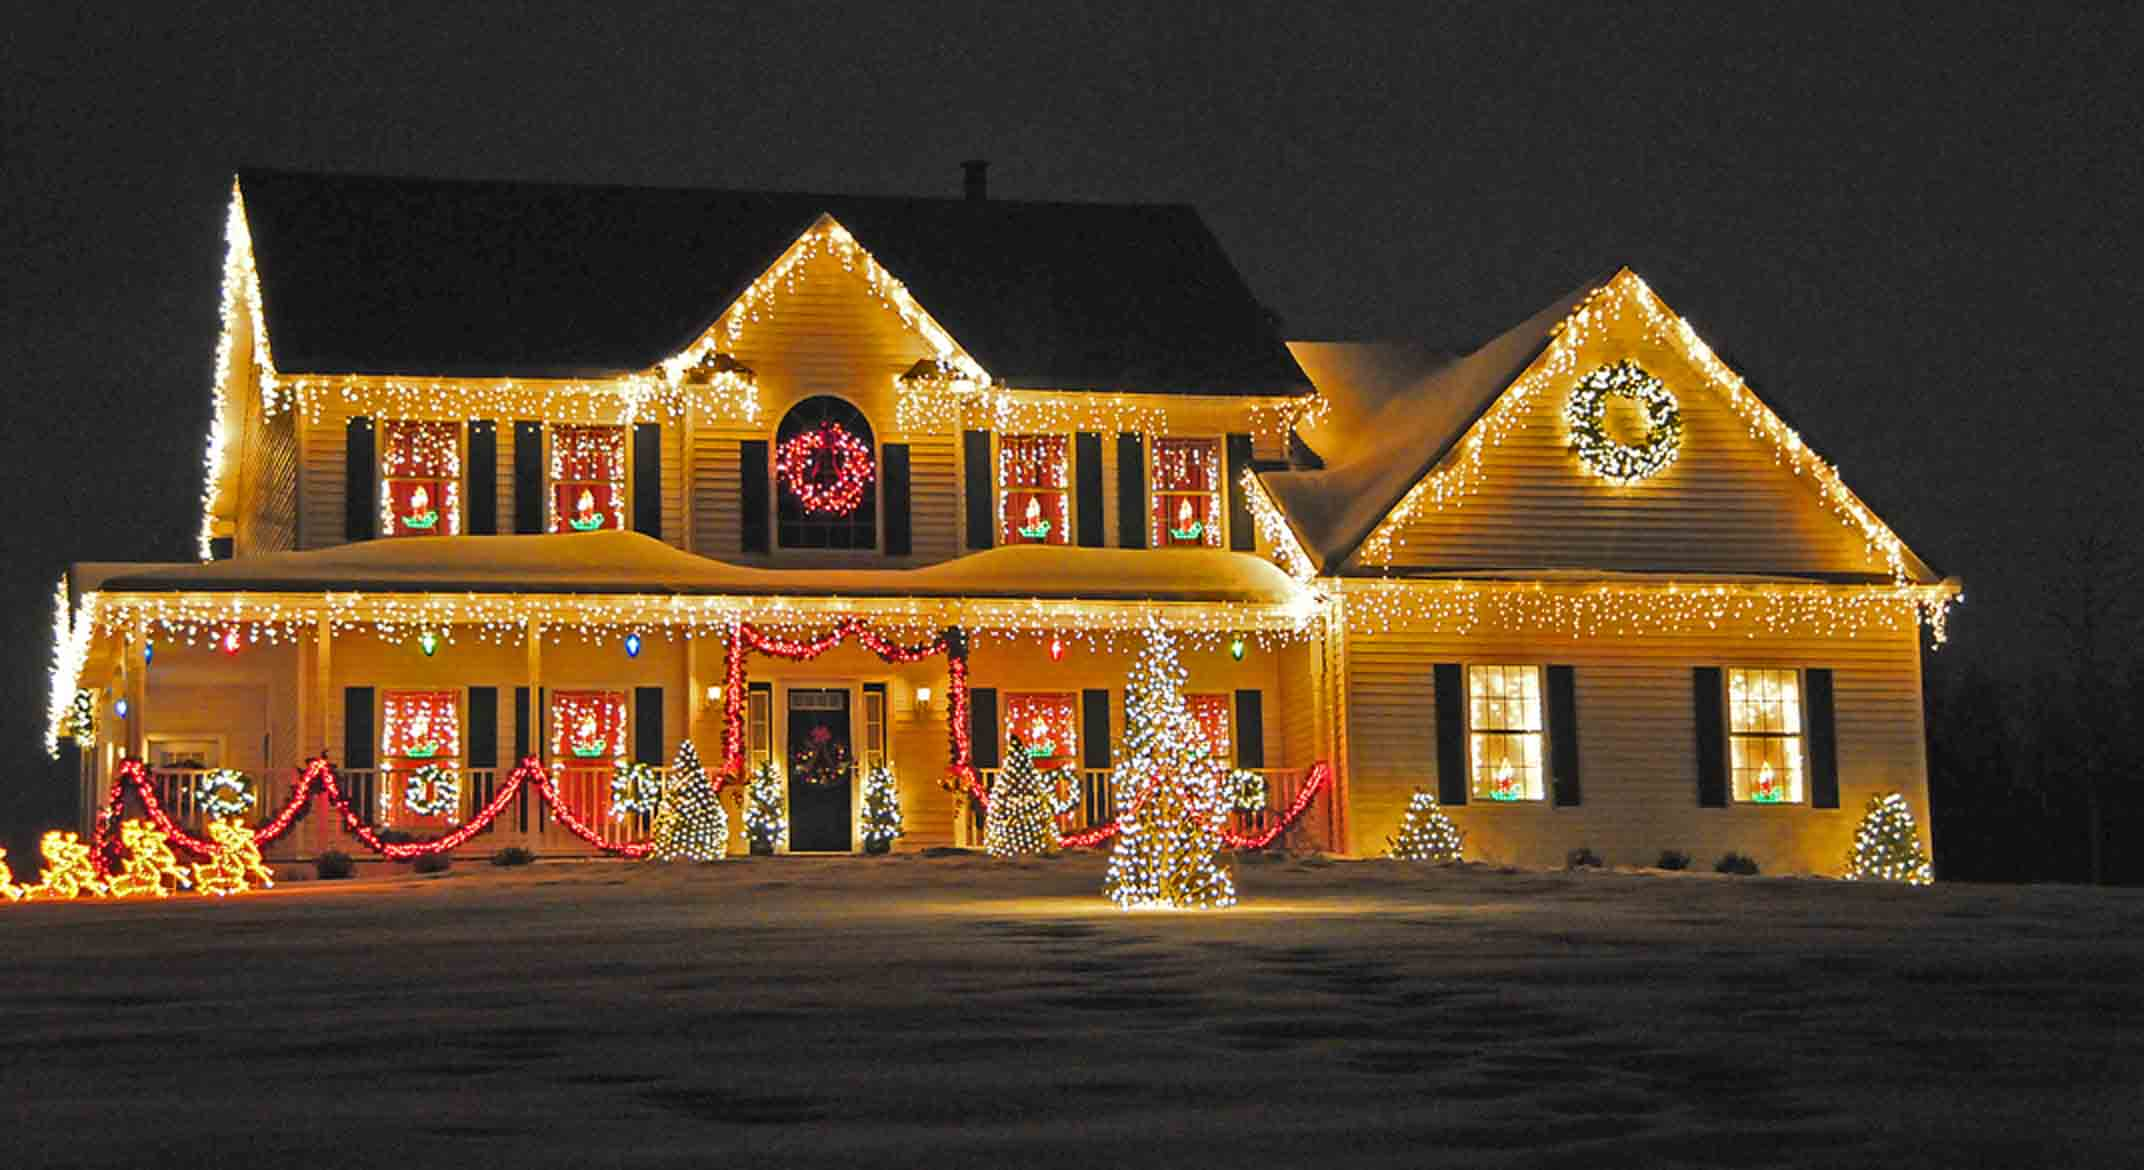 christmas lights, christmas lights on houses, animated christmas lights, cartoon christmas lights, christmas lights border, led christmas lights-16